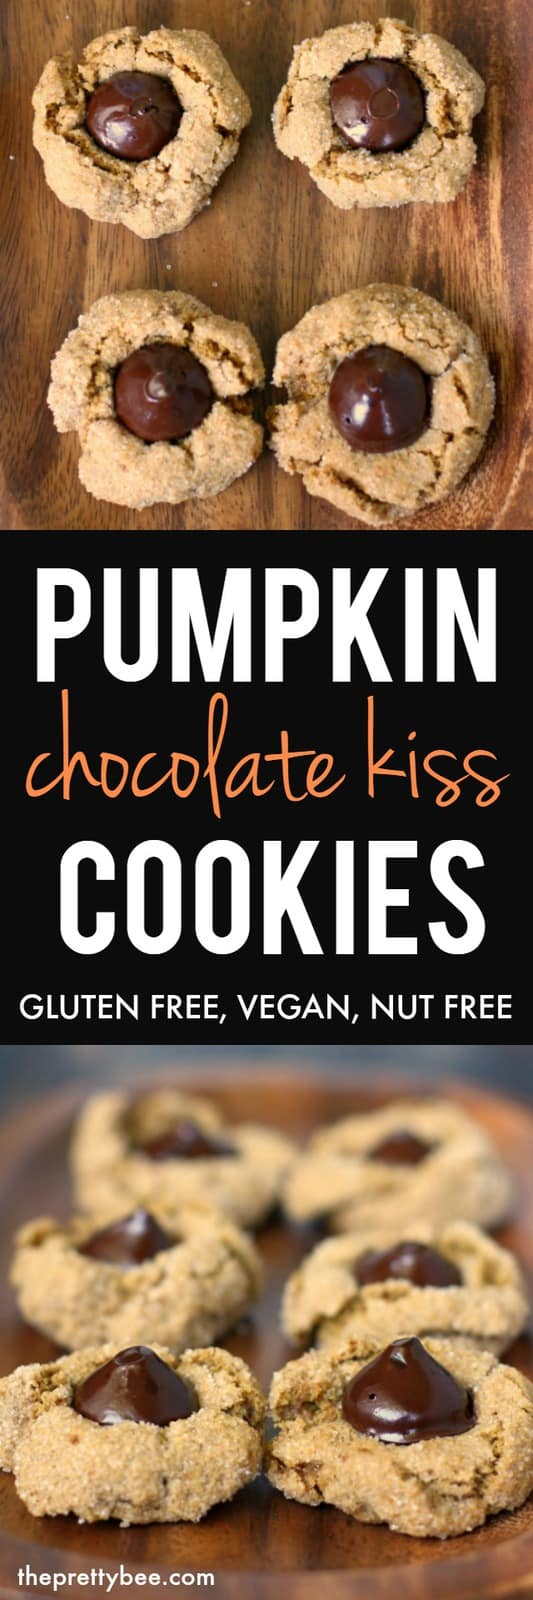 These vegan and gluten free pumpkin kiss cookies are nicely spiced, chewy, and chocolatey. These are perfect for a holiday party! #vegan #glutenfree